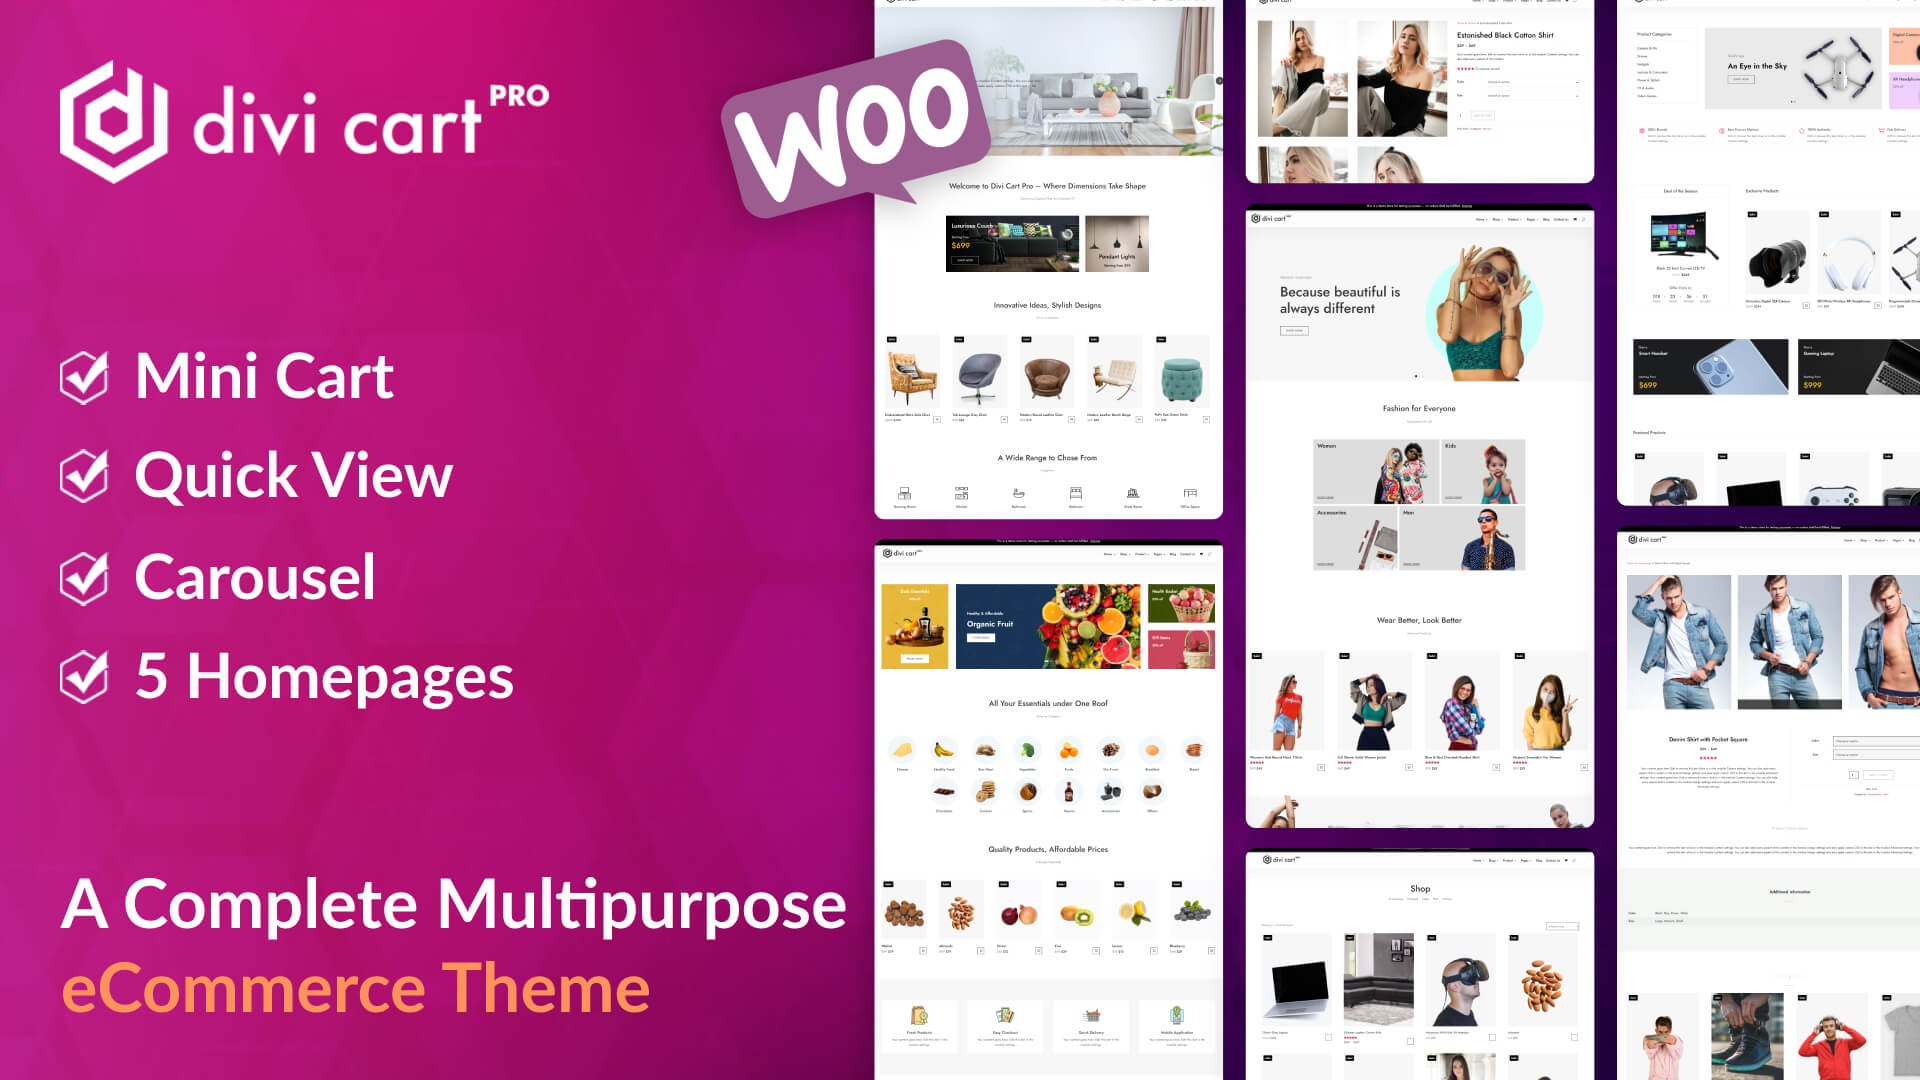 Build state of the art Divi shops with the all-new premium Divi Cart Pro